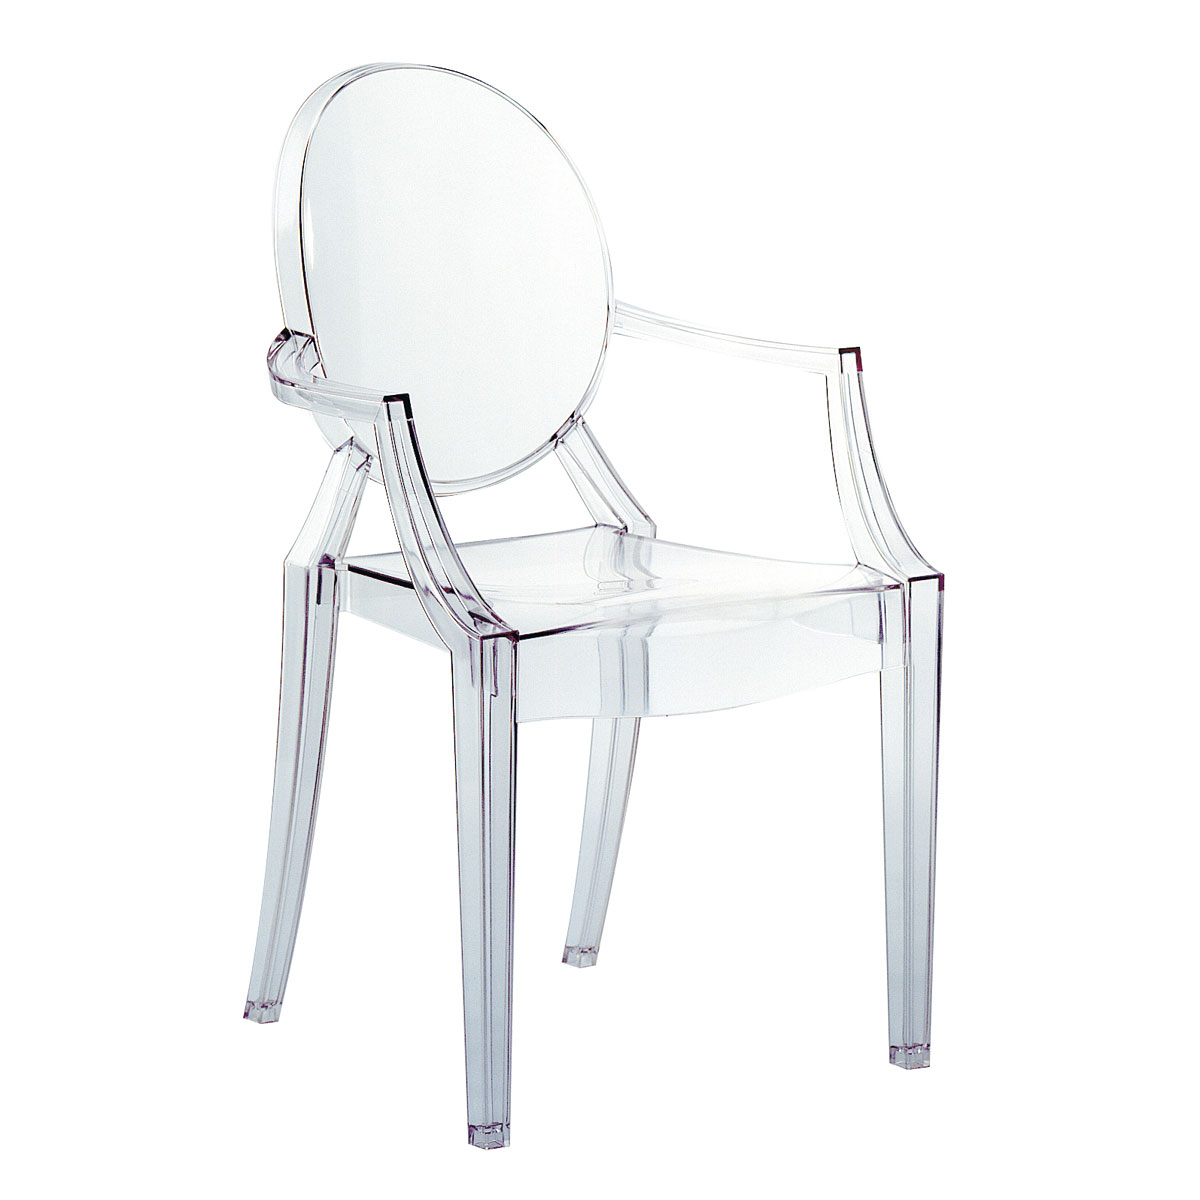 Louis Ghost chaise Transparent Verre (4 unités d´emballage)